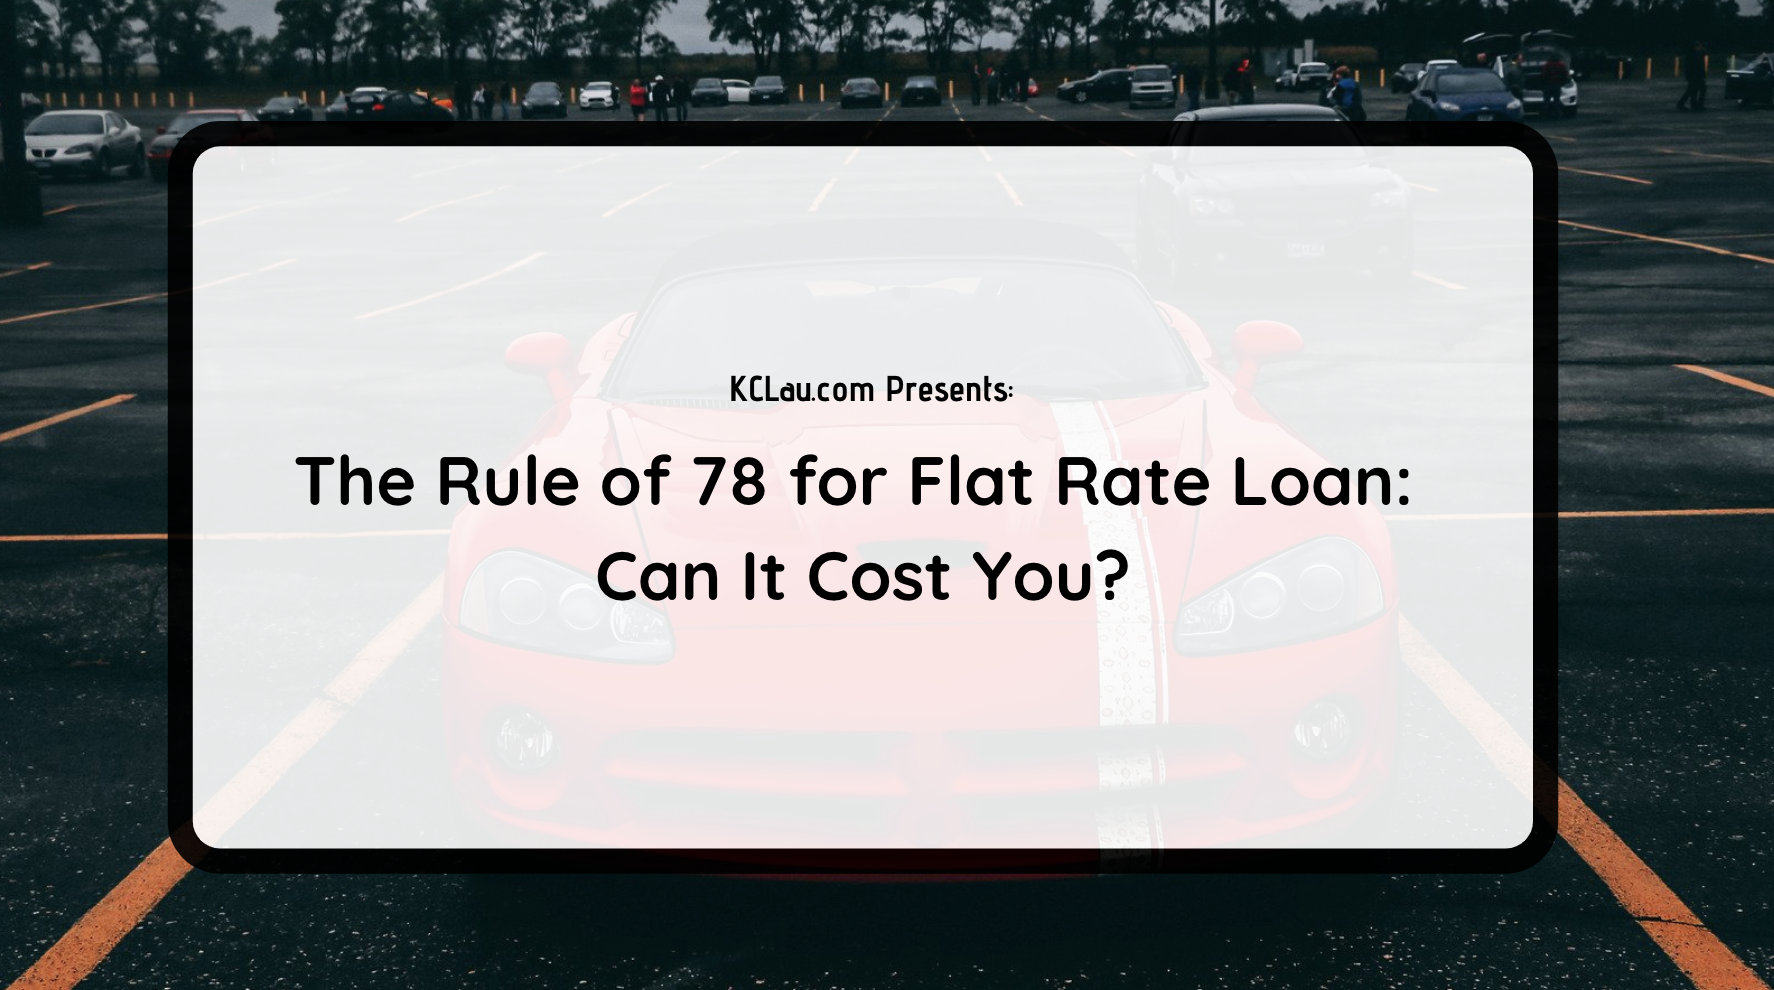 The Rule of 78 for Flat Rate Loan: Can It Cost You?